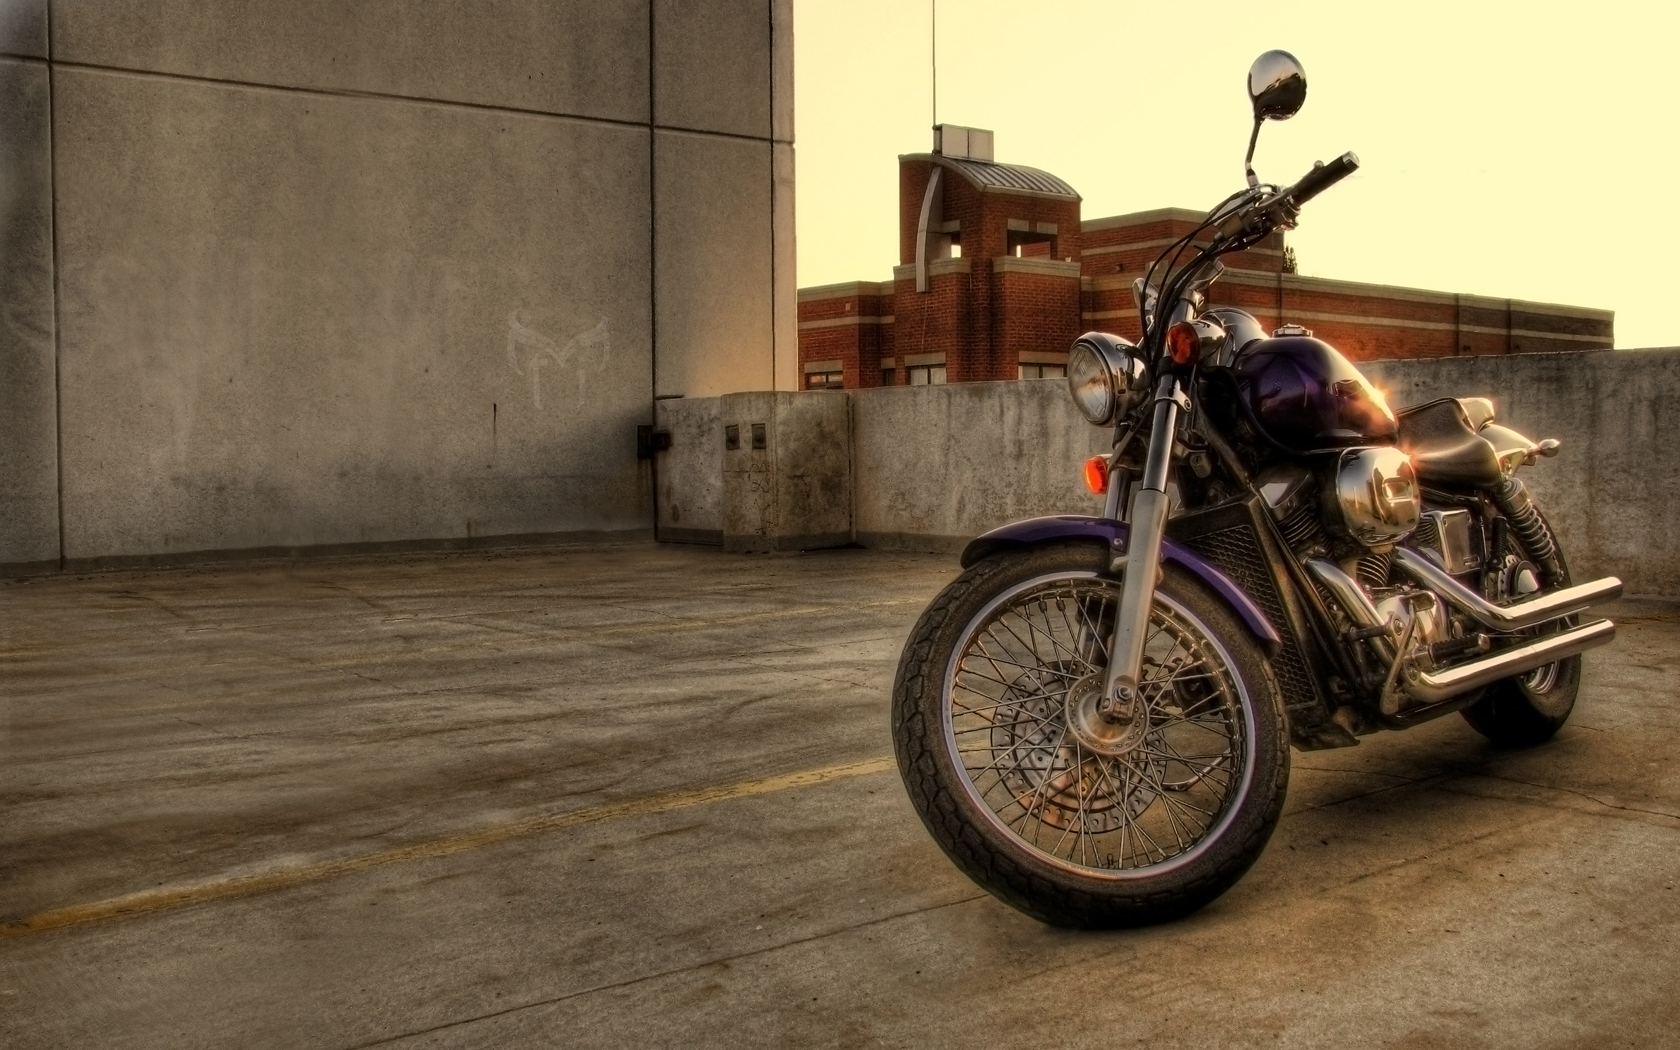 motorcycle on rooftop by unorthodox6